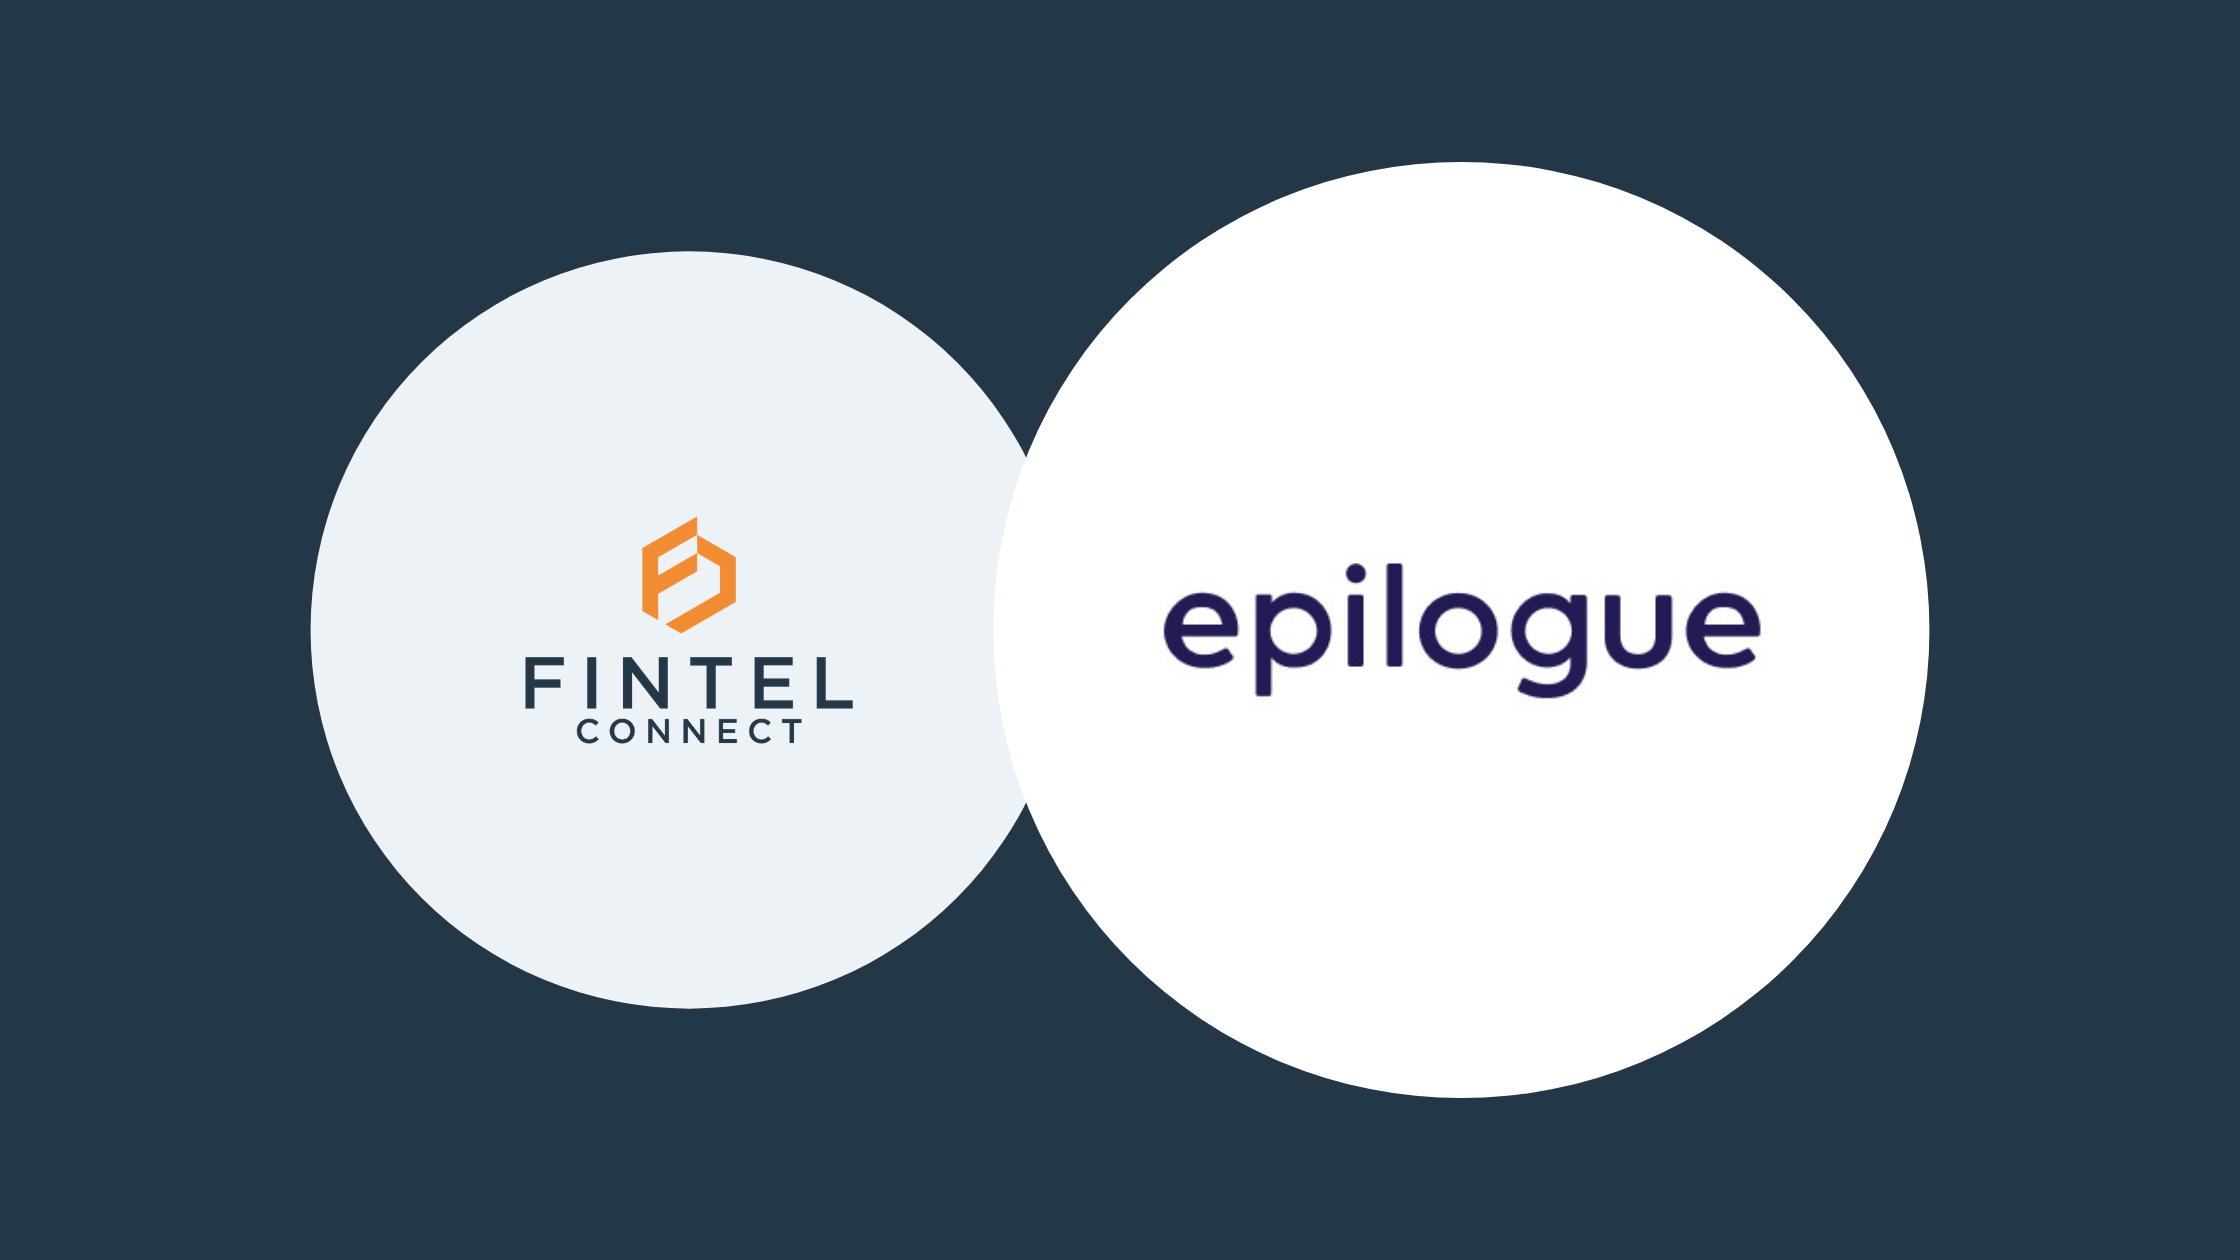 Epilogue Launches New Affiliate Program in Partnership with Fintel Connect